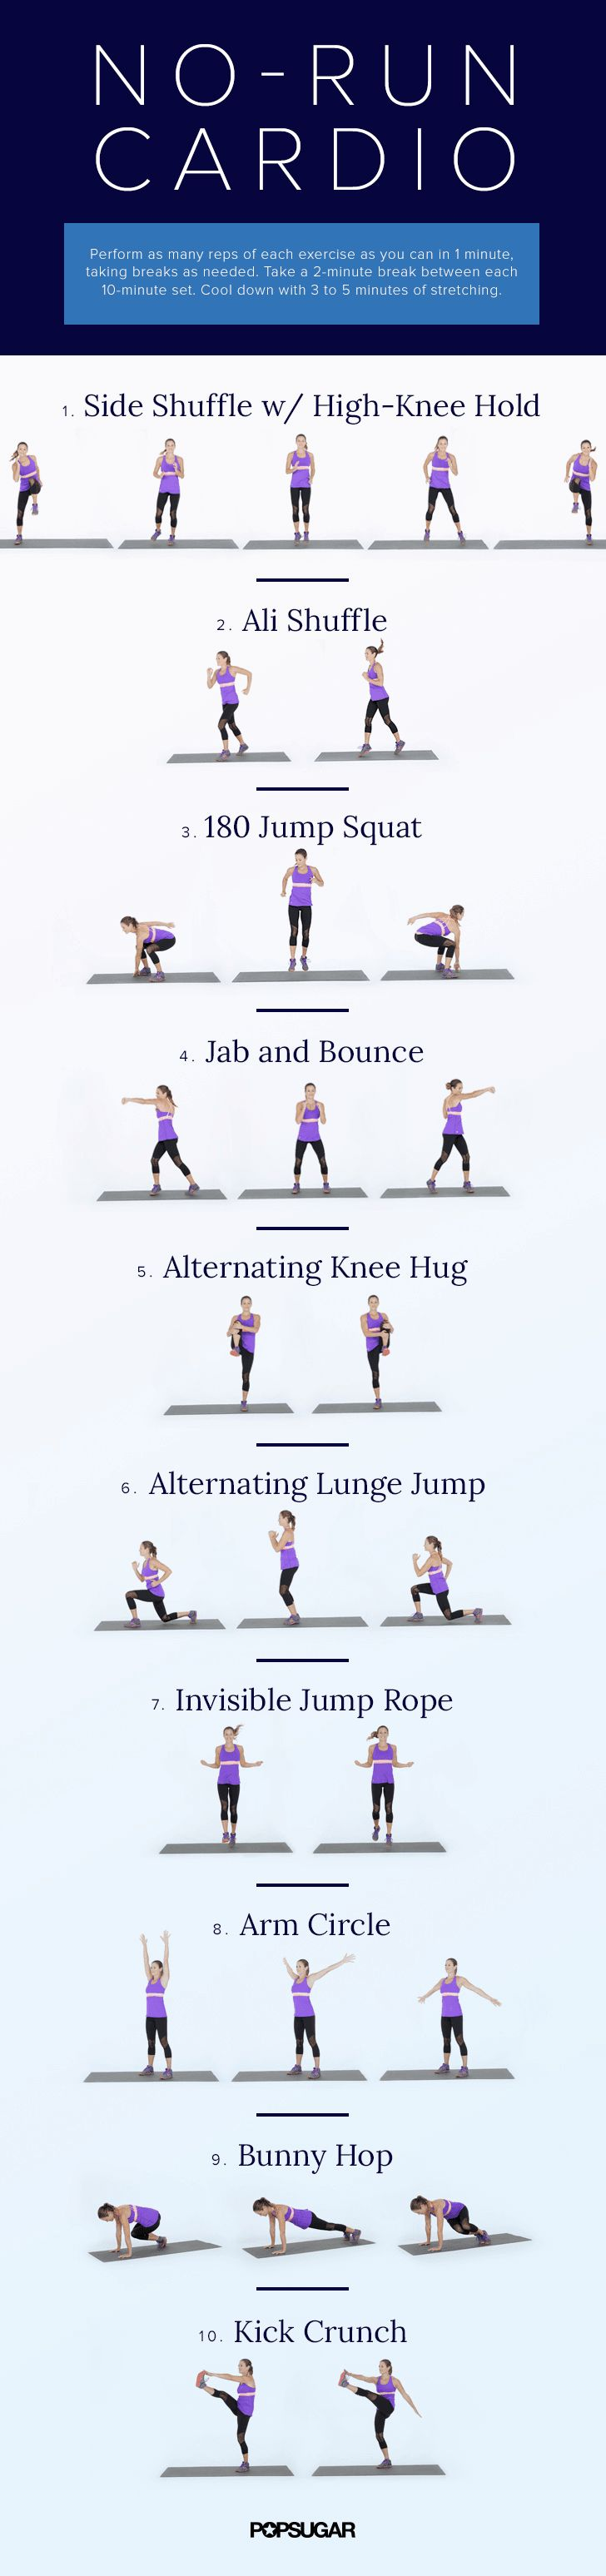 A Calorie-Burning Workout For People Who Hate to Run | POPSUGAR Fitness UK